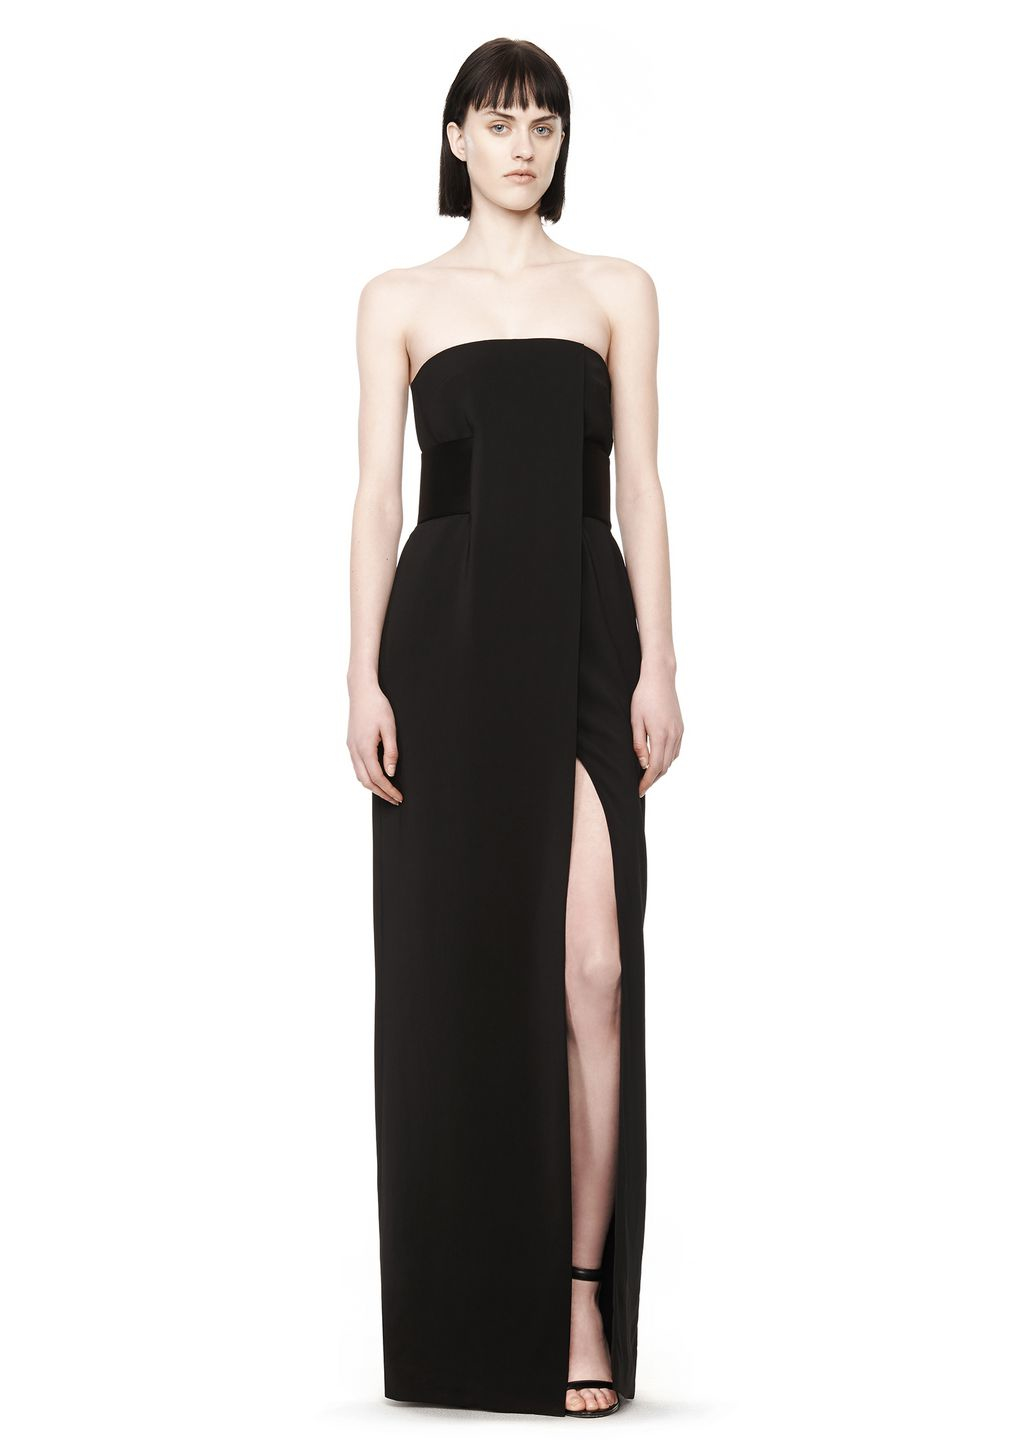 Lyst - Alexander Wang Strapless Gown in Black